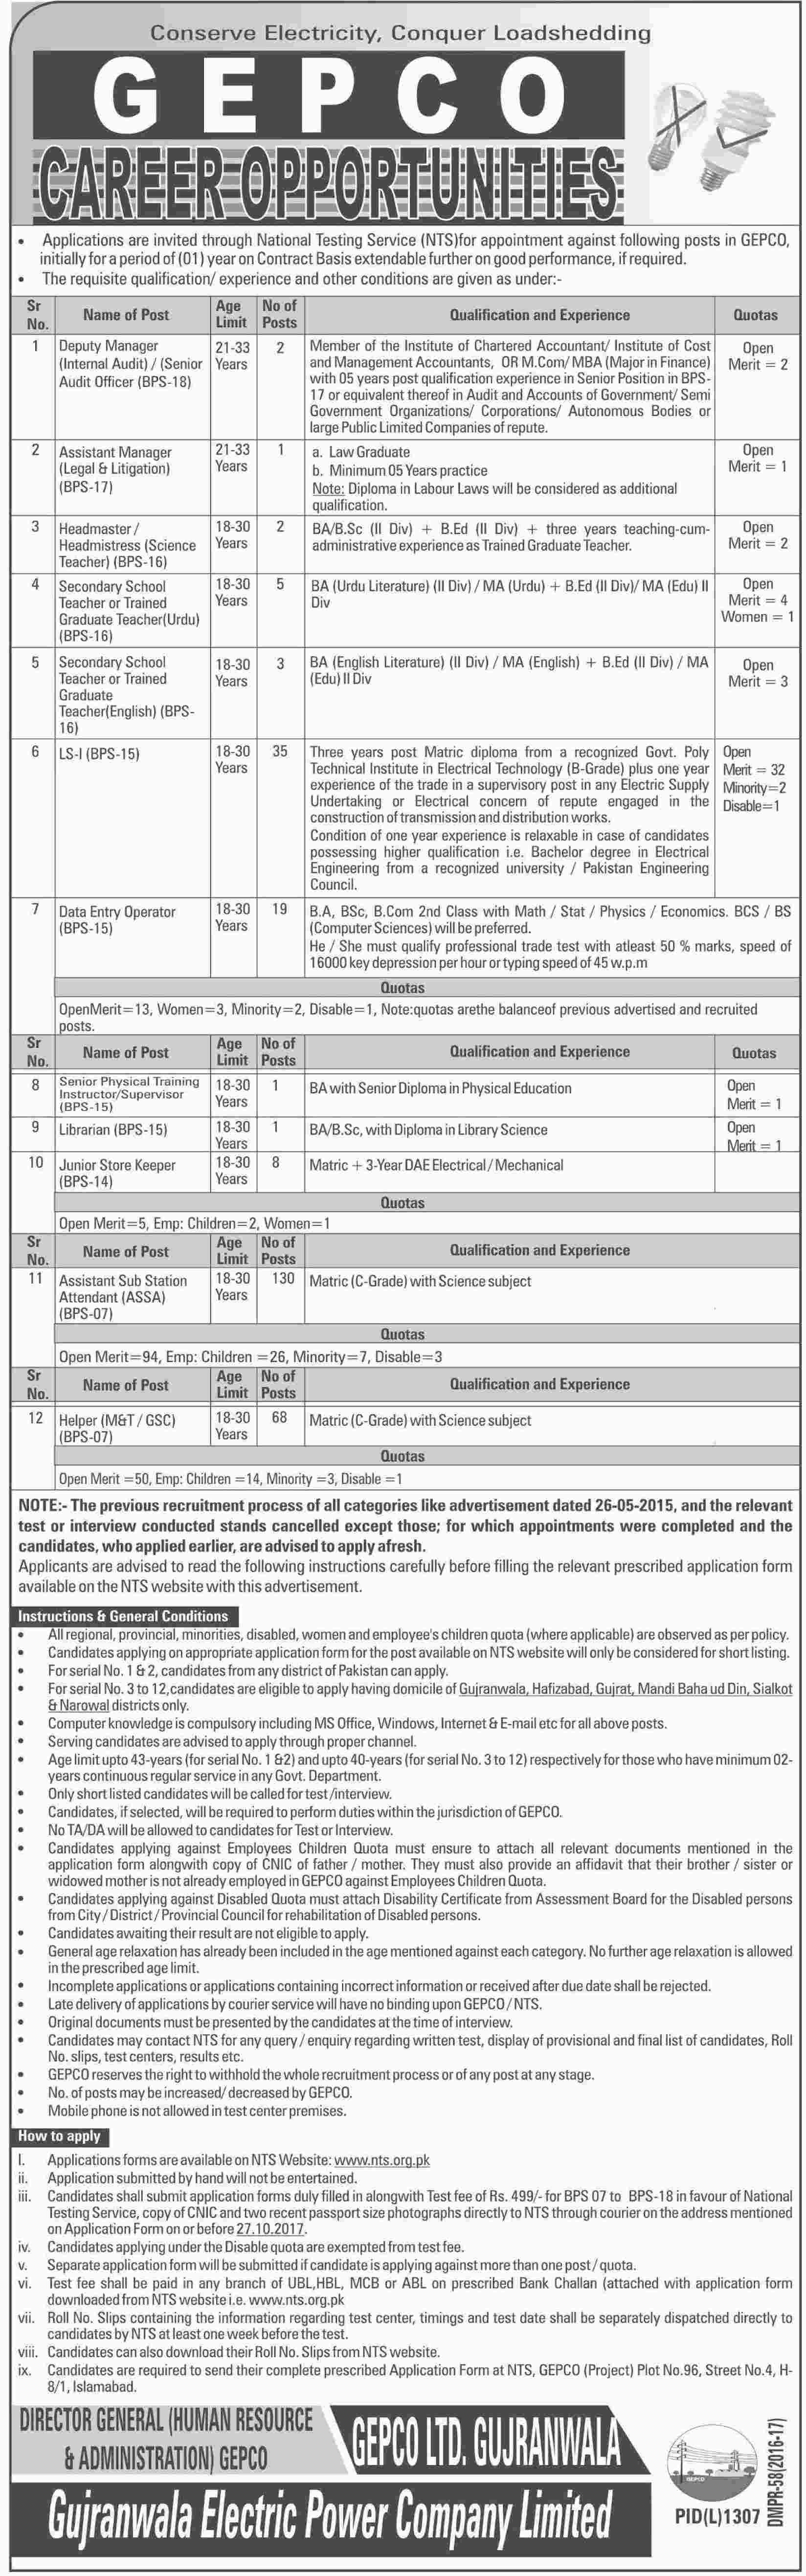 GEPCO Wapda Gujranwala Electric Power Company Jobs 2017